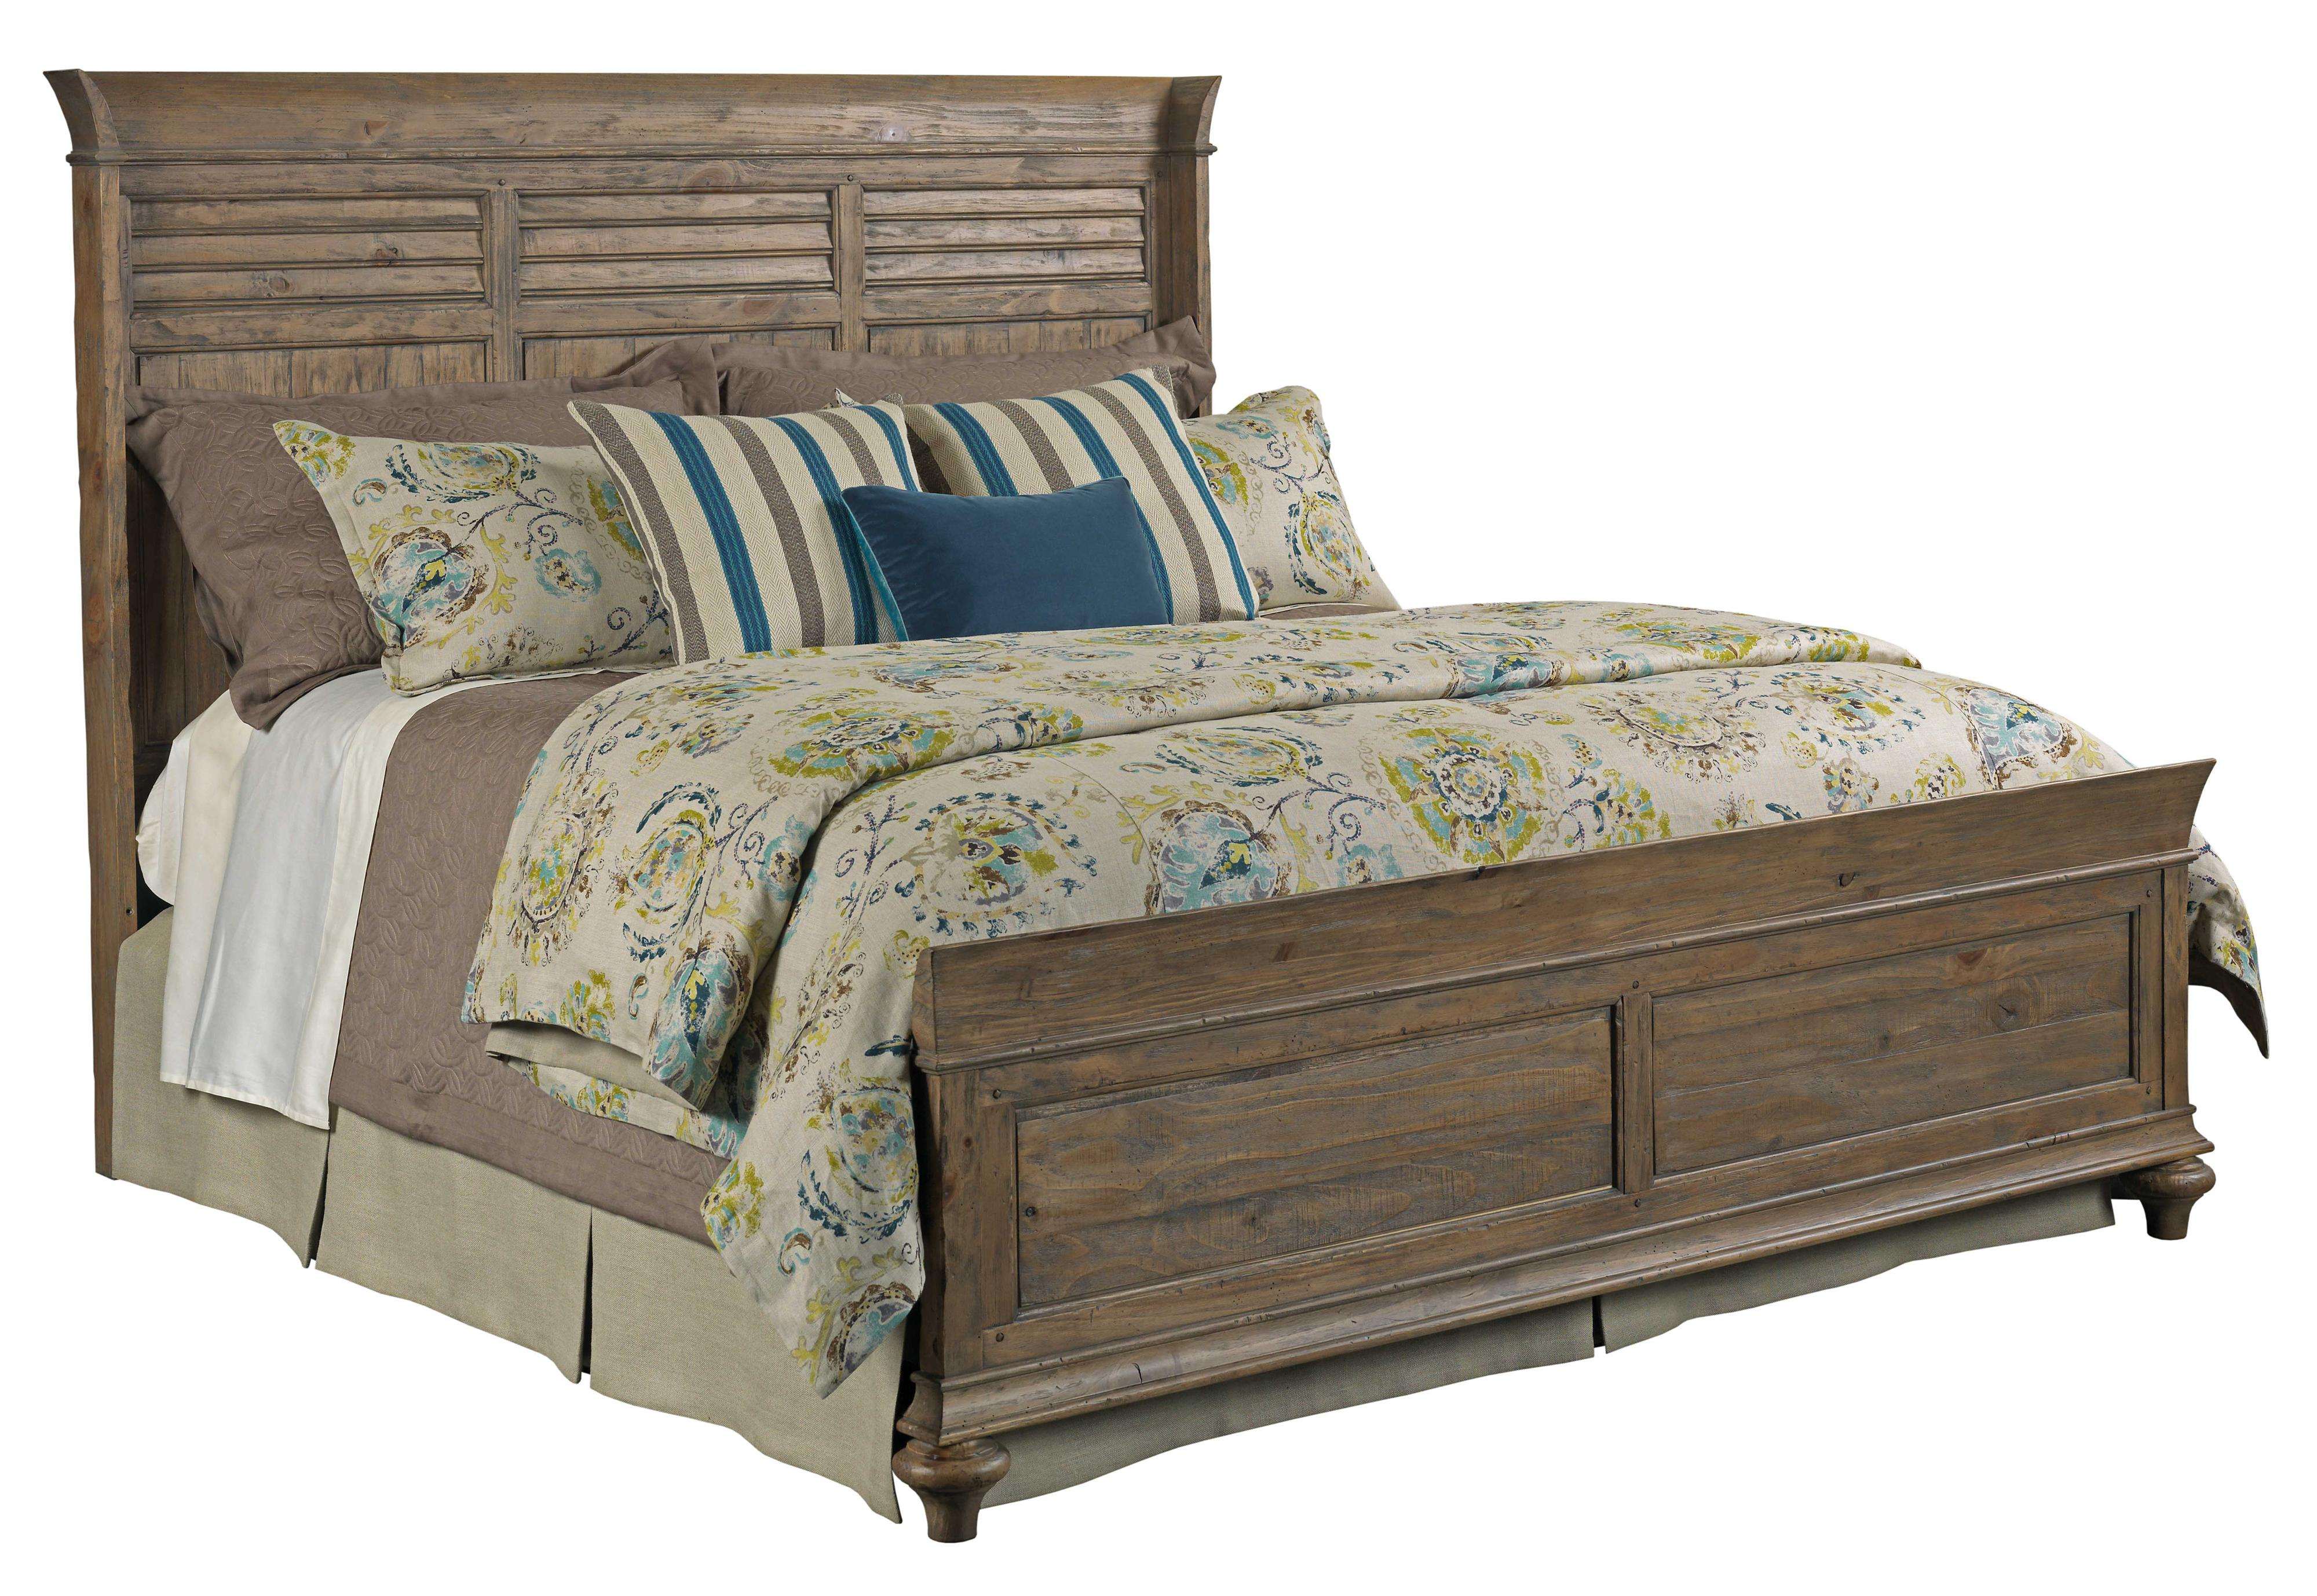 Weatherford Shelter King Bed Package With Shutter Style Headboard And Panel Footboard By Kincaid Furniture